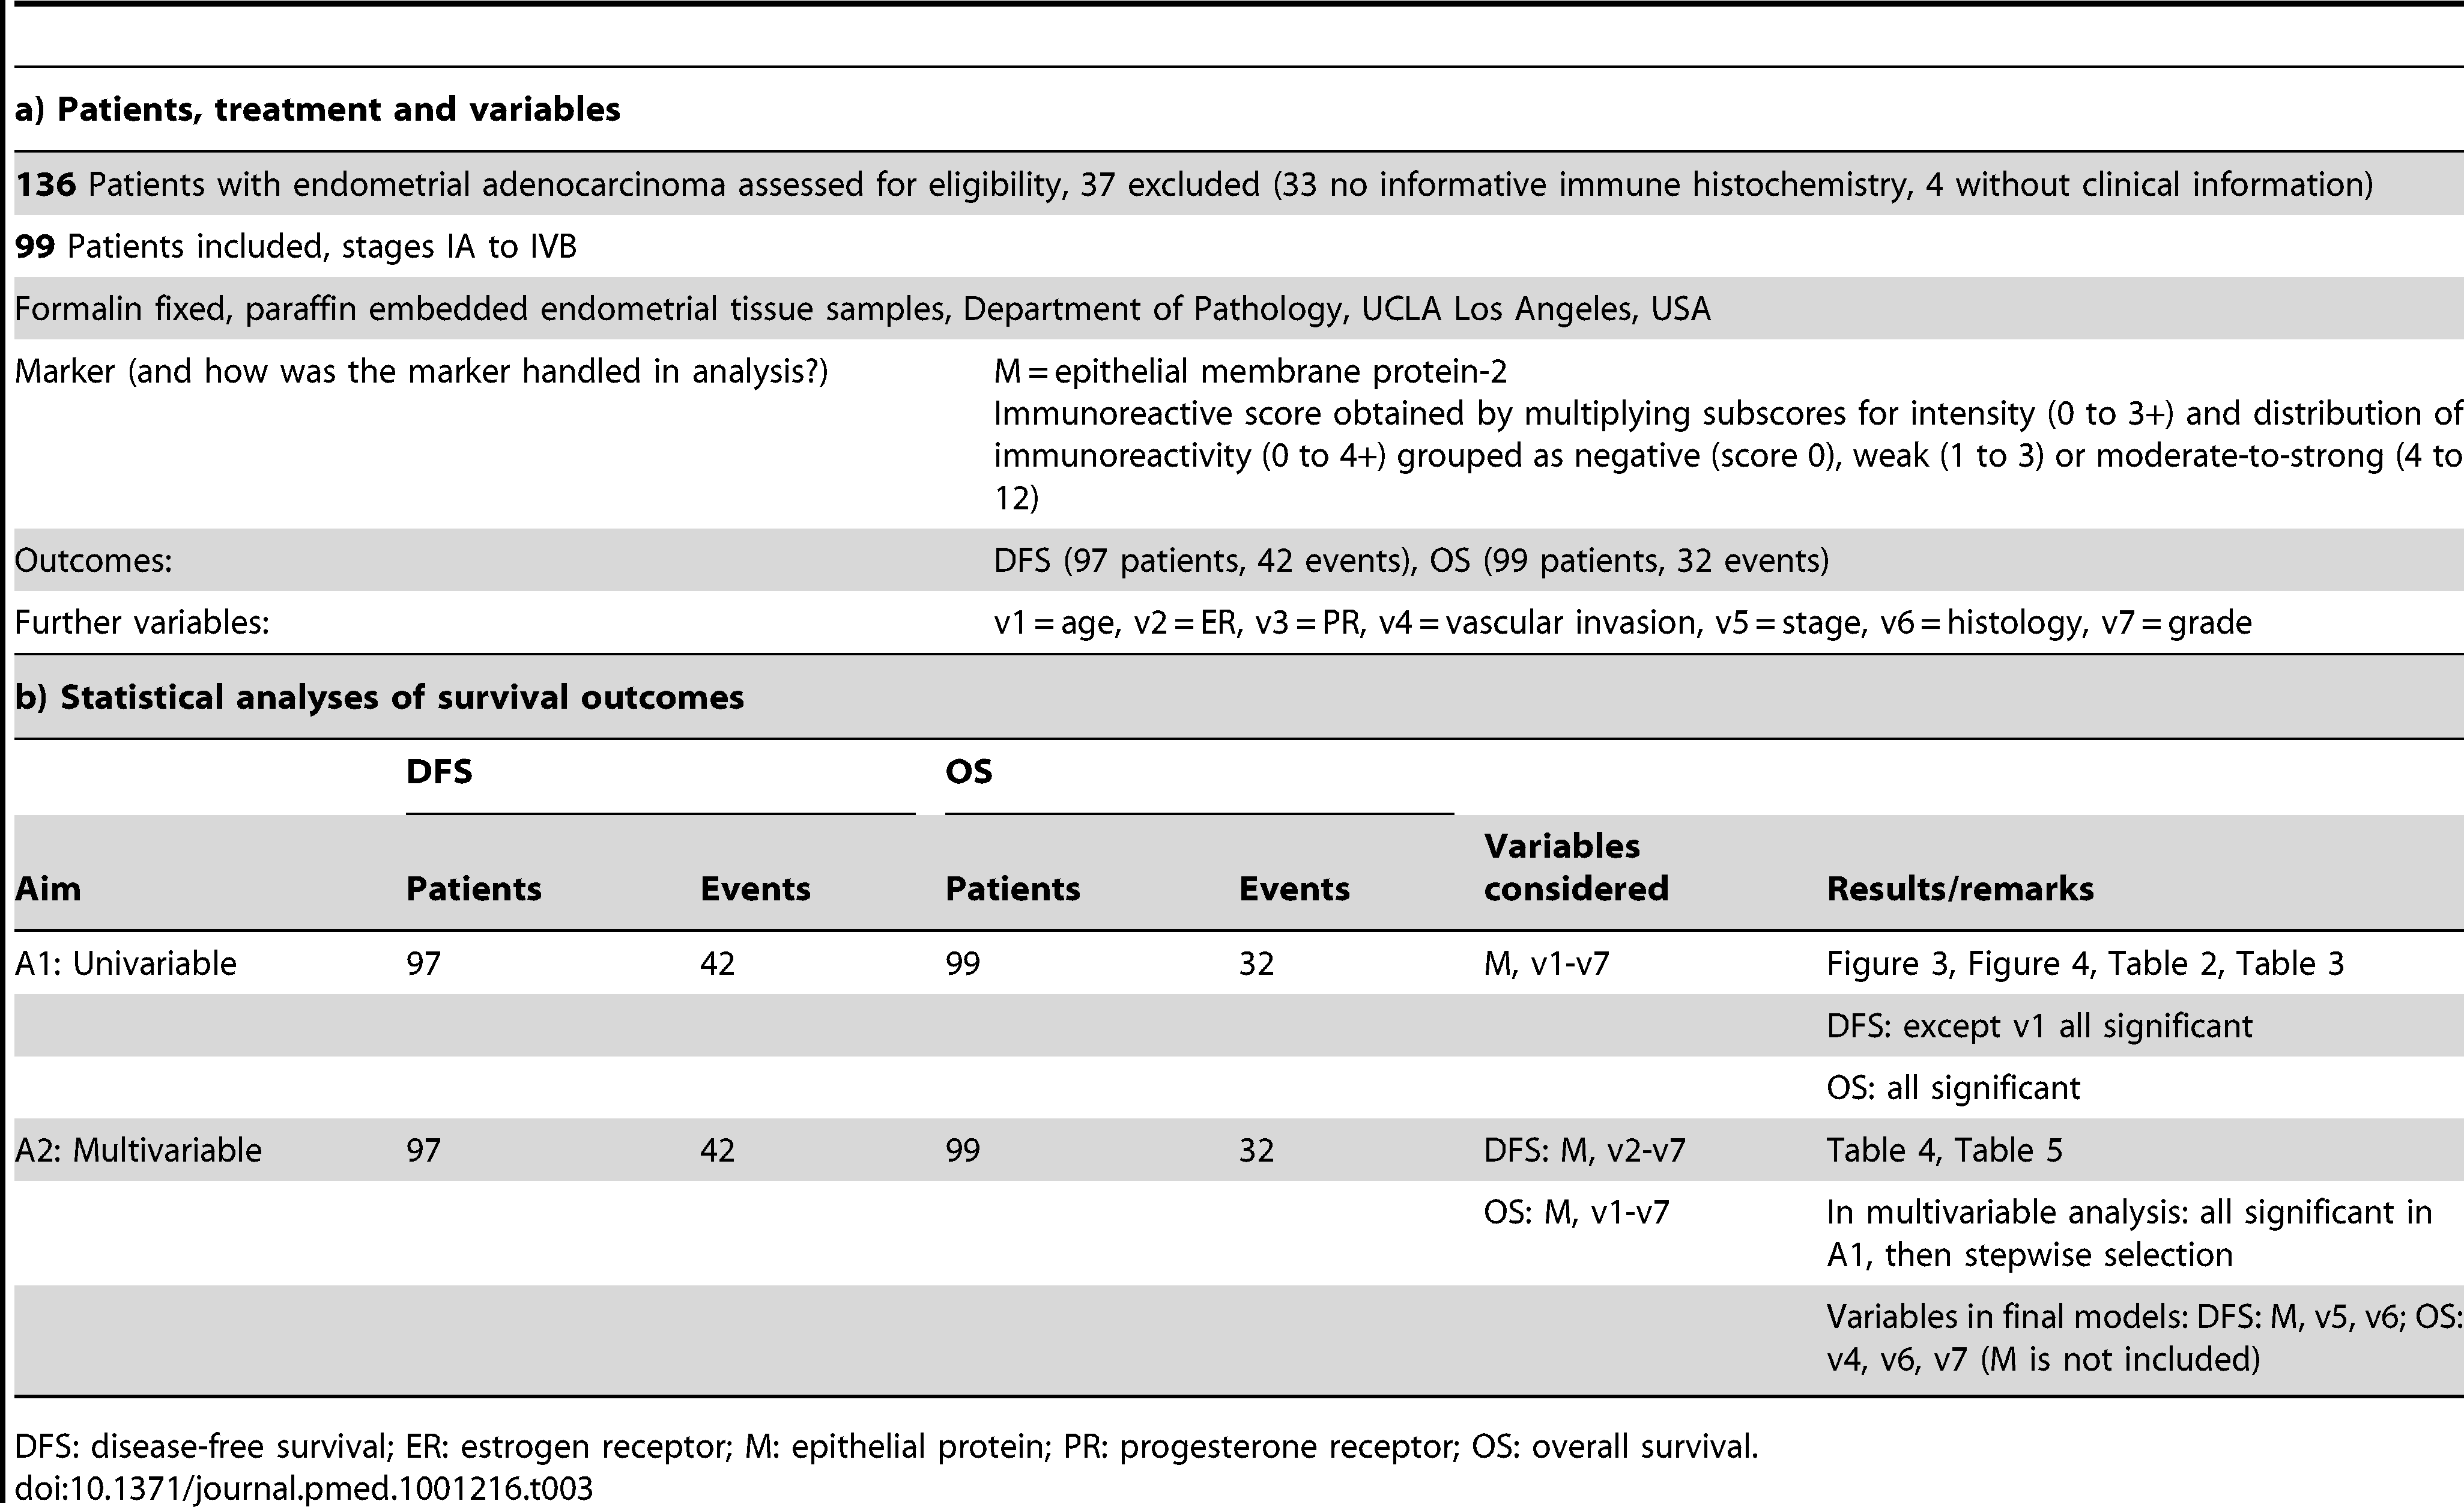 Example of the REMARK profile illustrated using data from a study of expression of epithelial membrane protein-2 in patients with endometrial adenocarcinoma <em class=&quot;ref&quot;>[158]</em>.